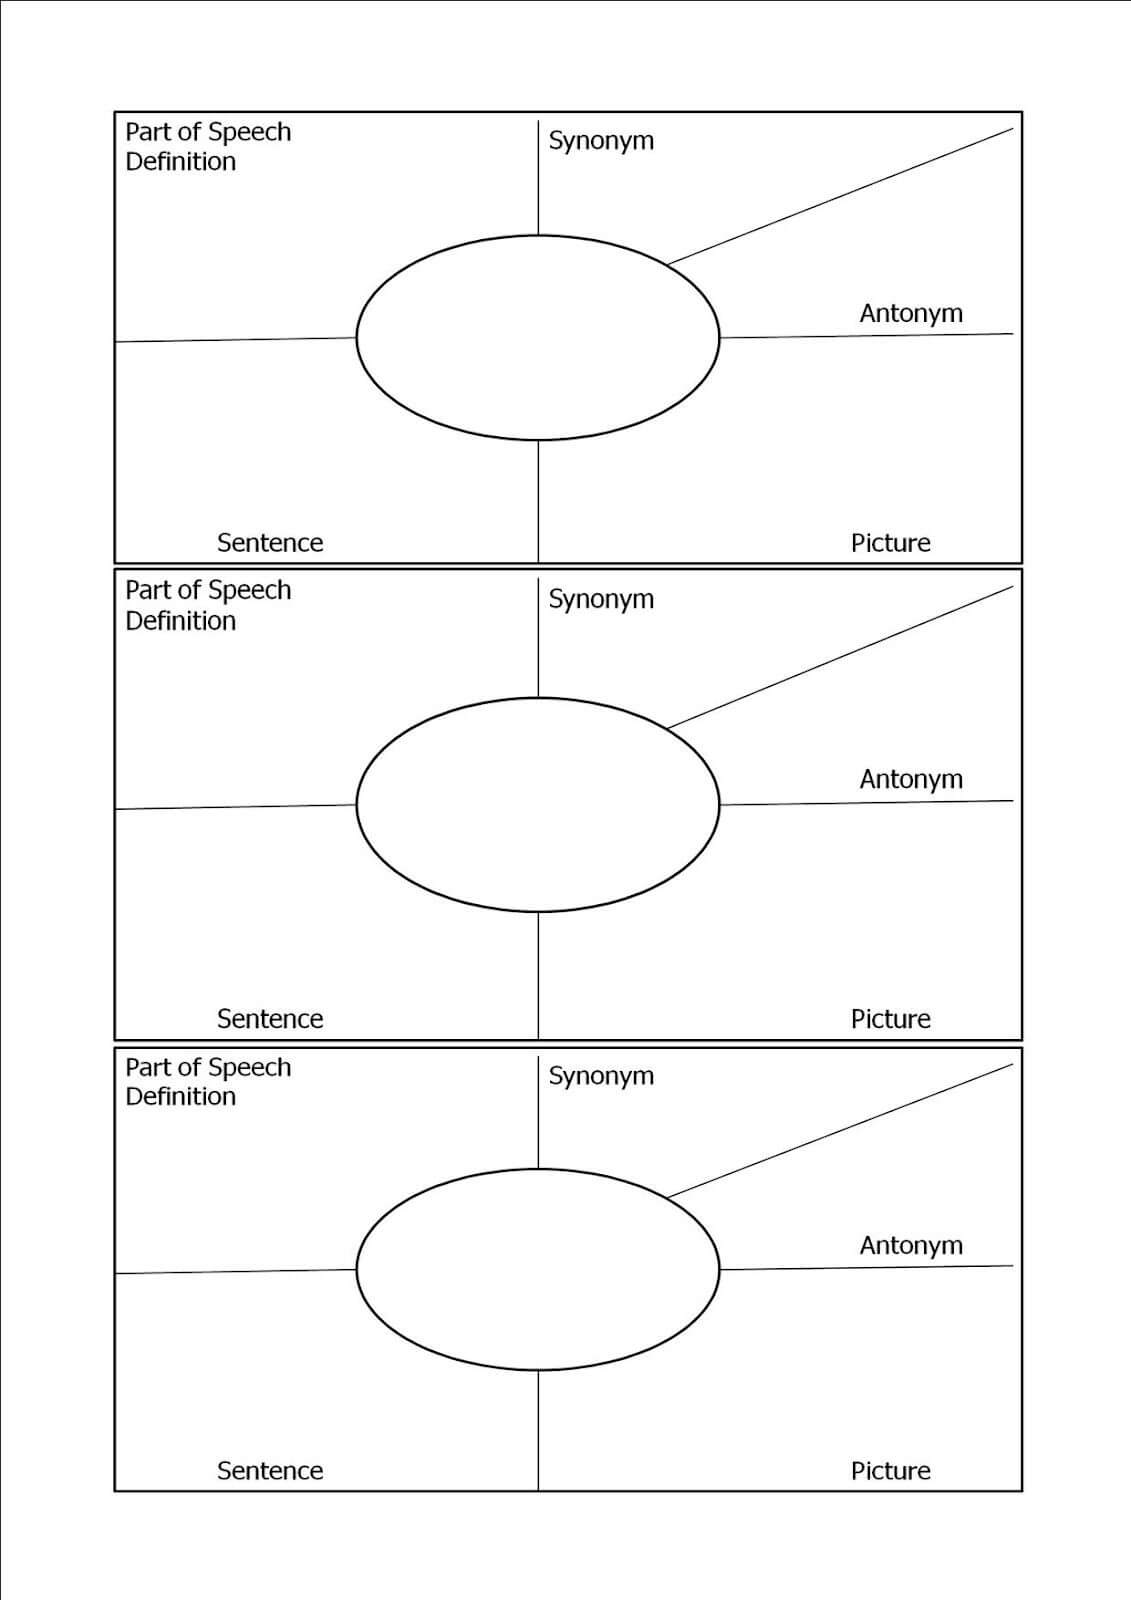 Kinsella Vocabulary Template Printable | Vocabulary Chart Intended For Vocabulary Words Worksheet Template